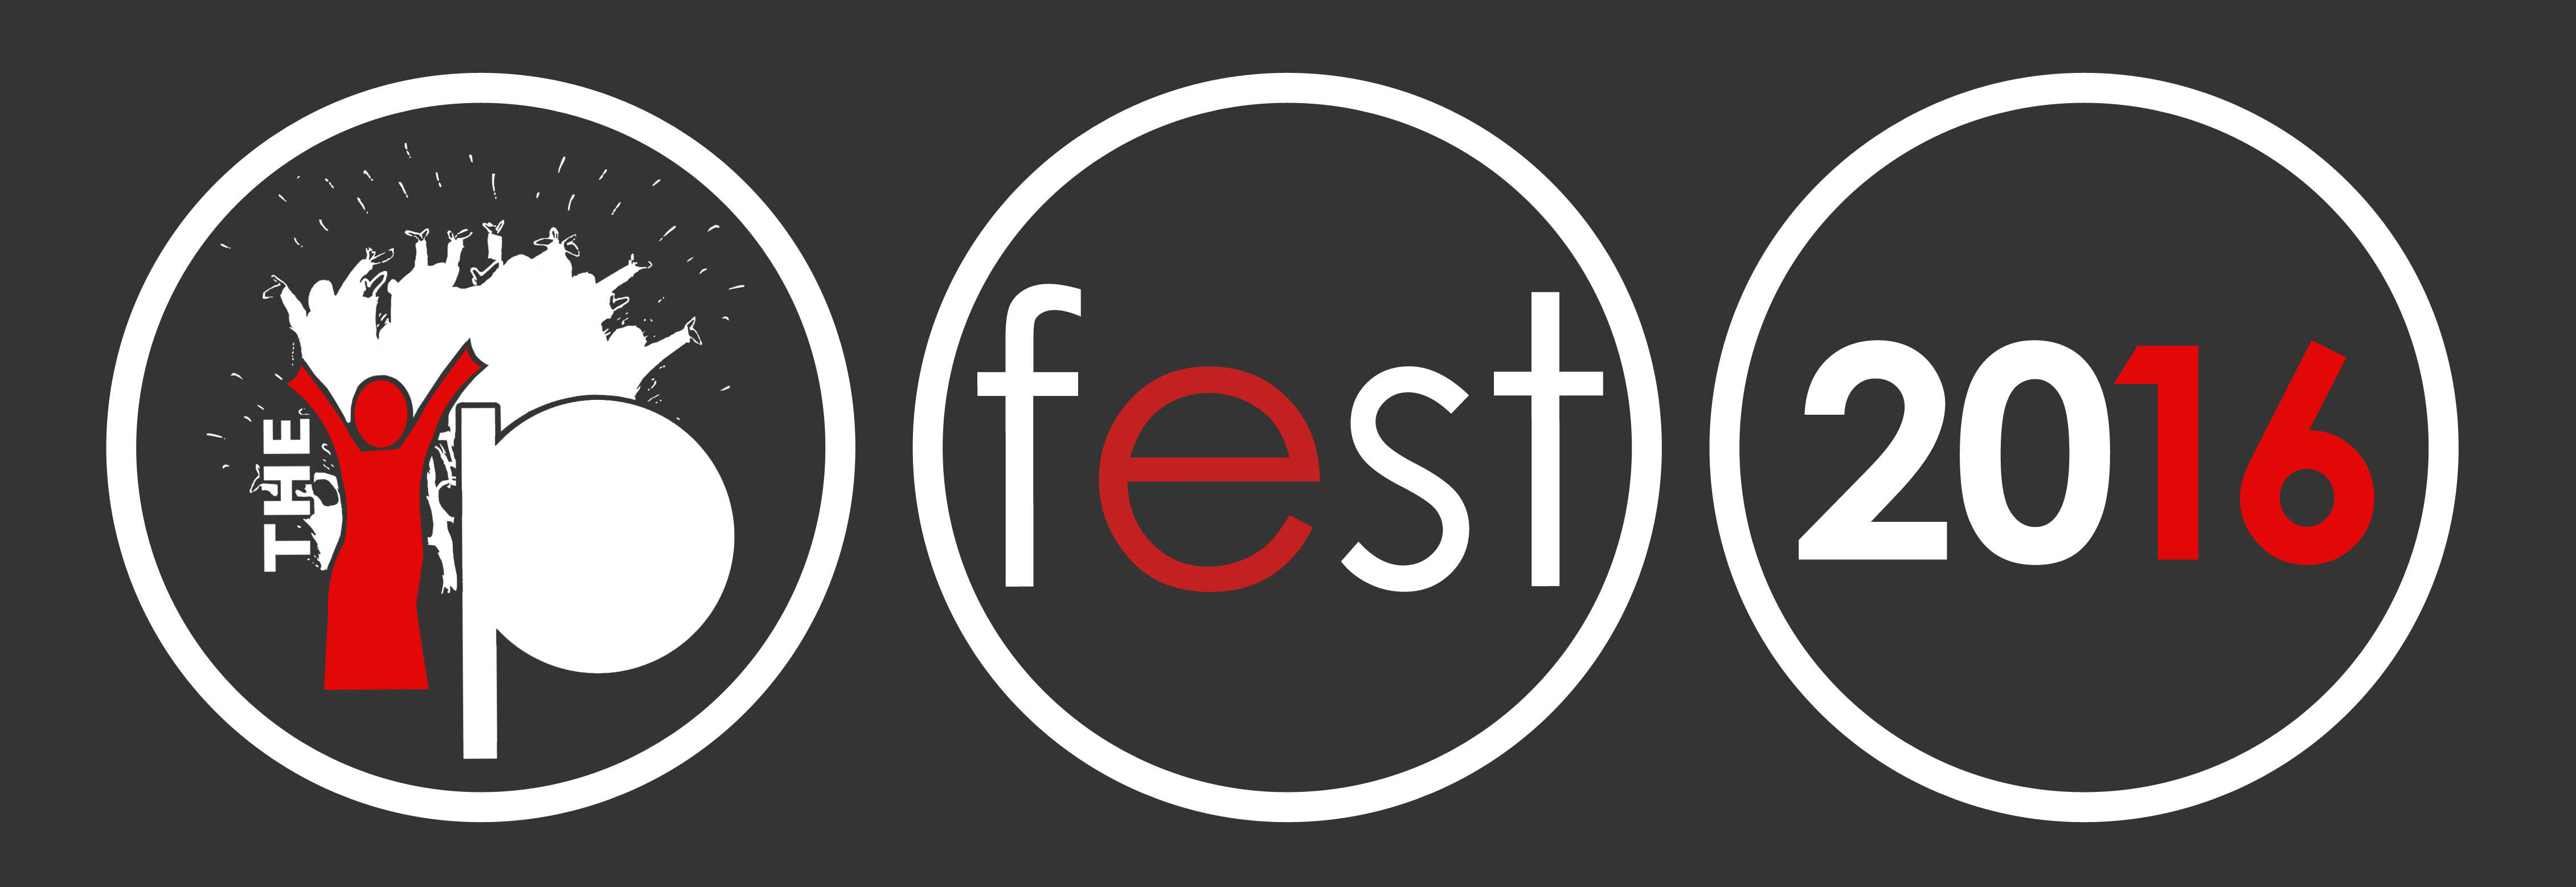 International Praise Festival Logo